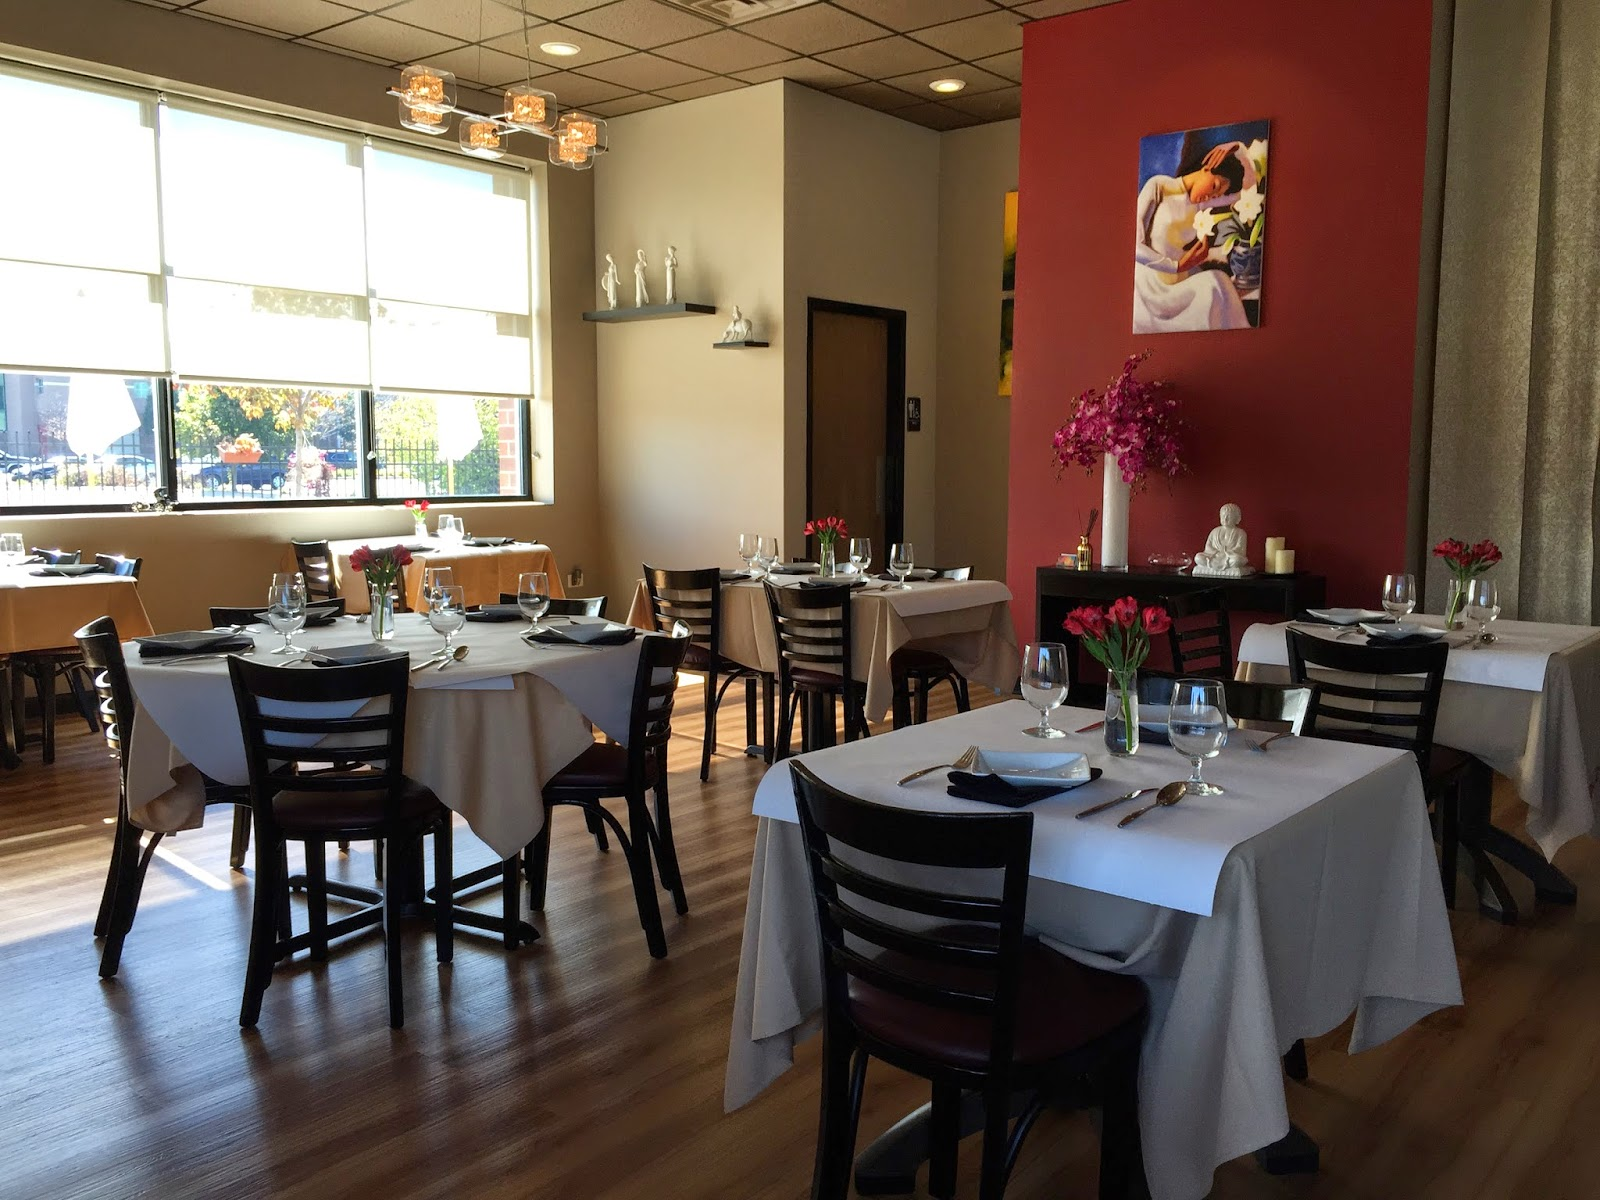 Orlandparker Q Restaurant In Orland Park Offers A Unique